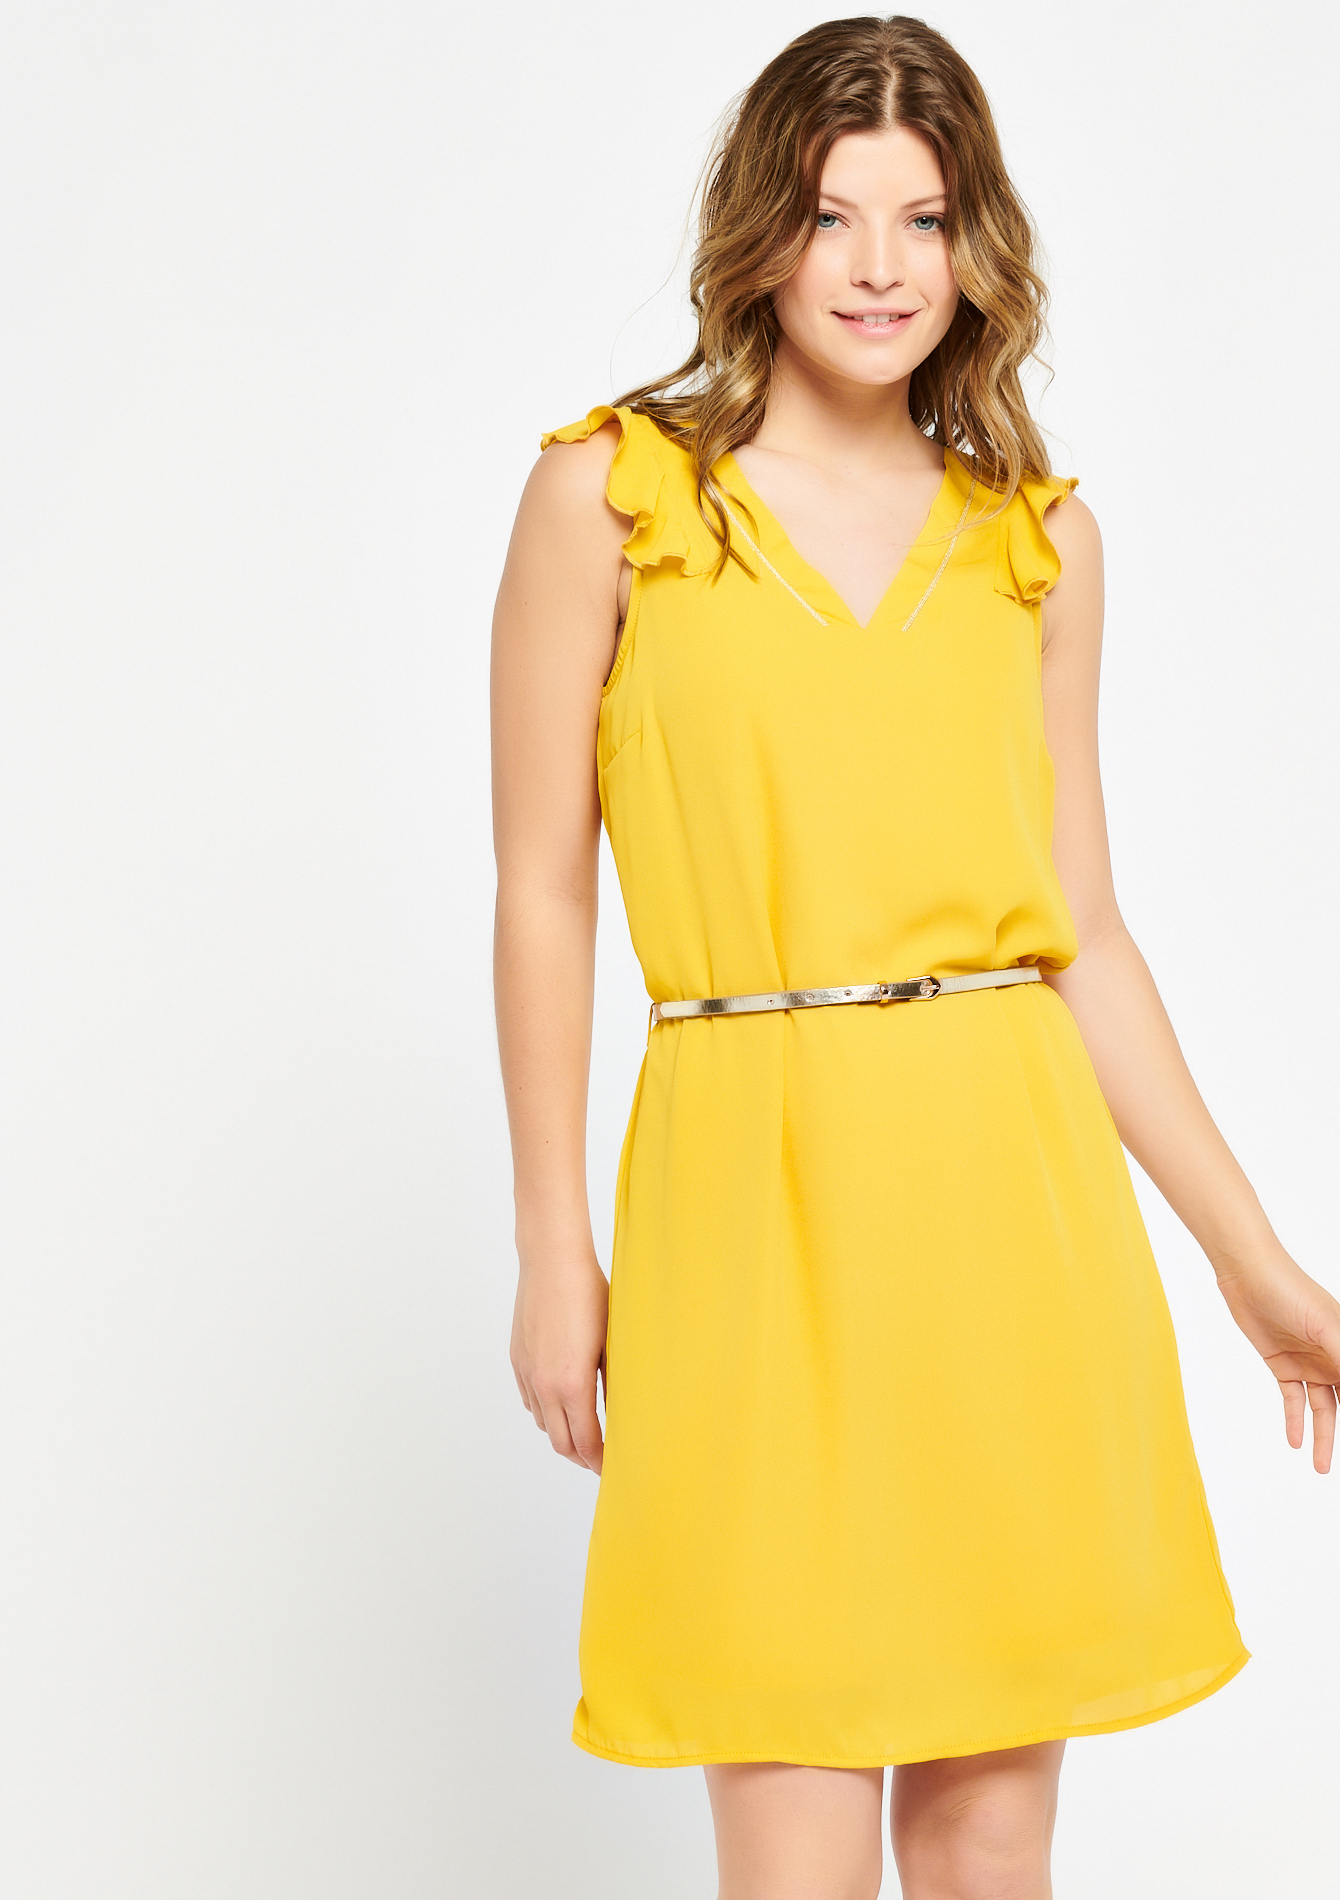 Robe sans manches, ceinture - LEMON CURRY - 928408